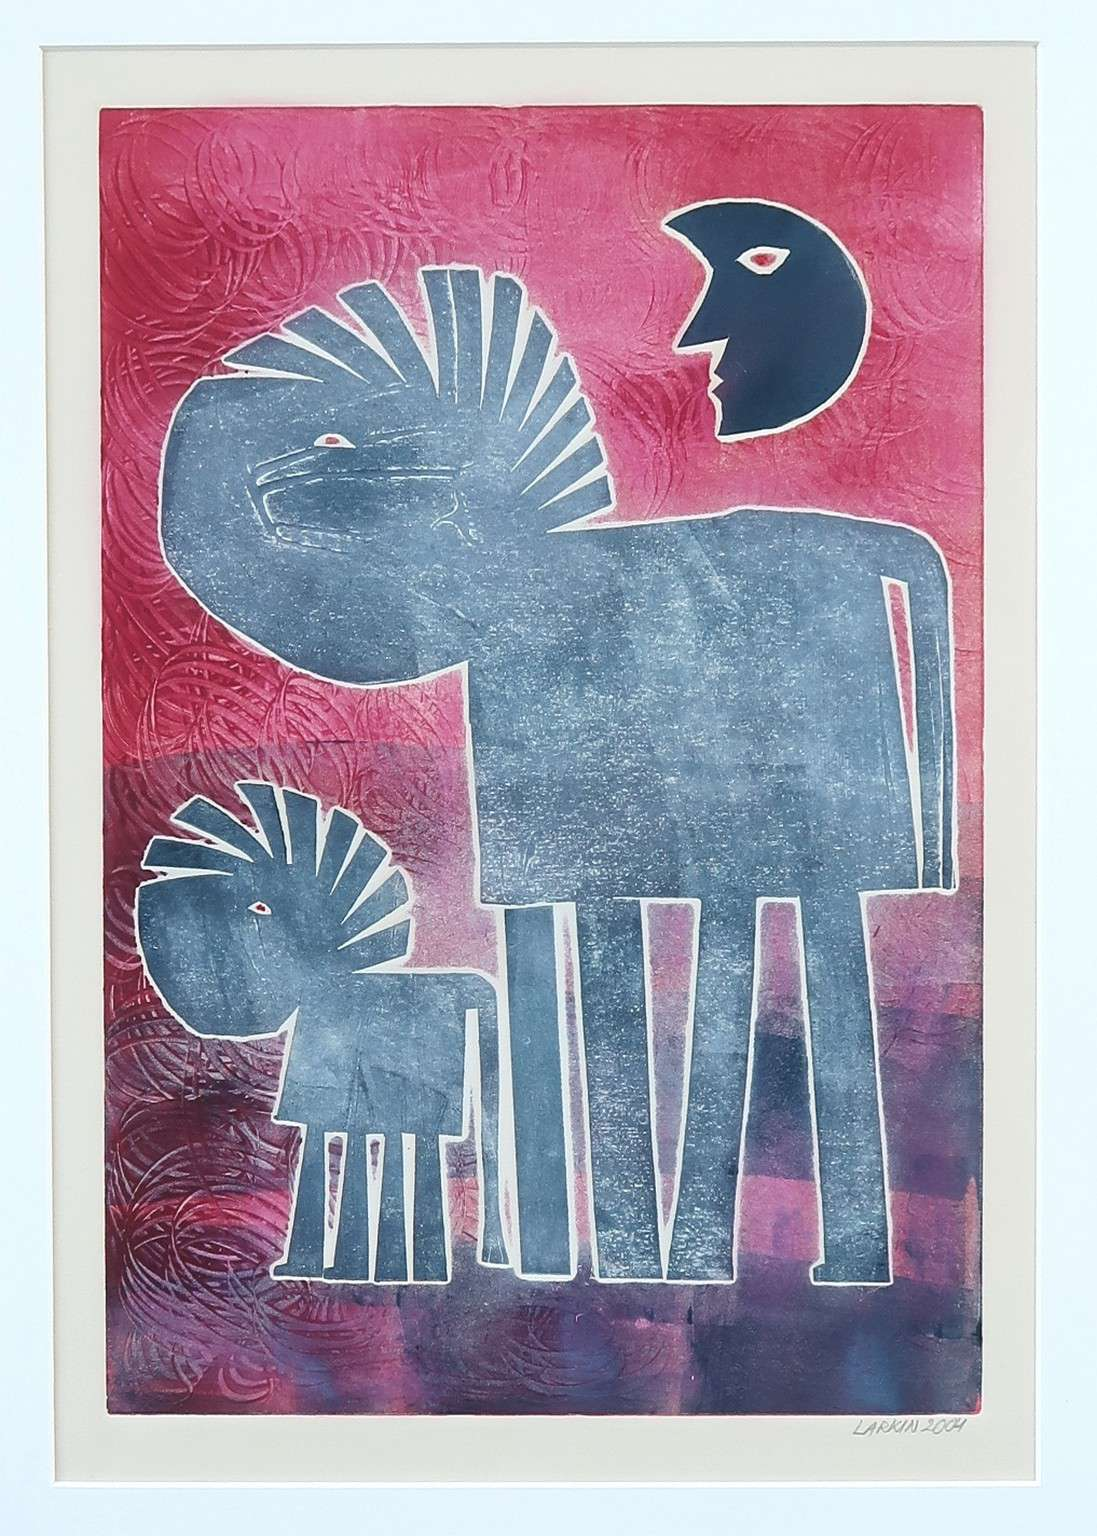 - Father and son - Druk overig - 34x59